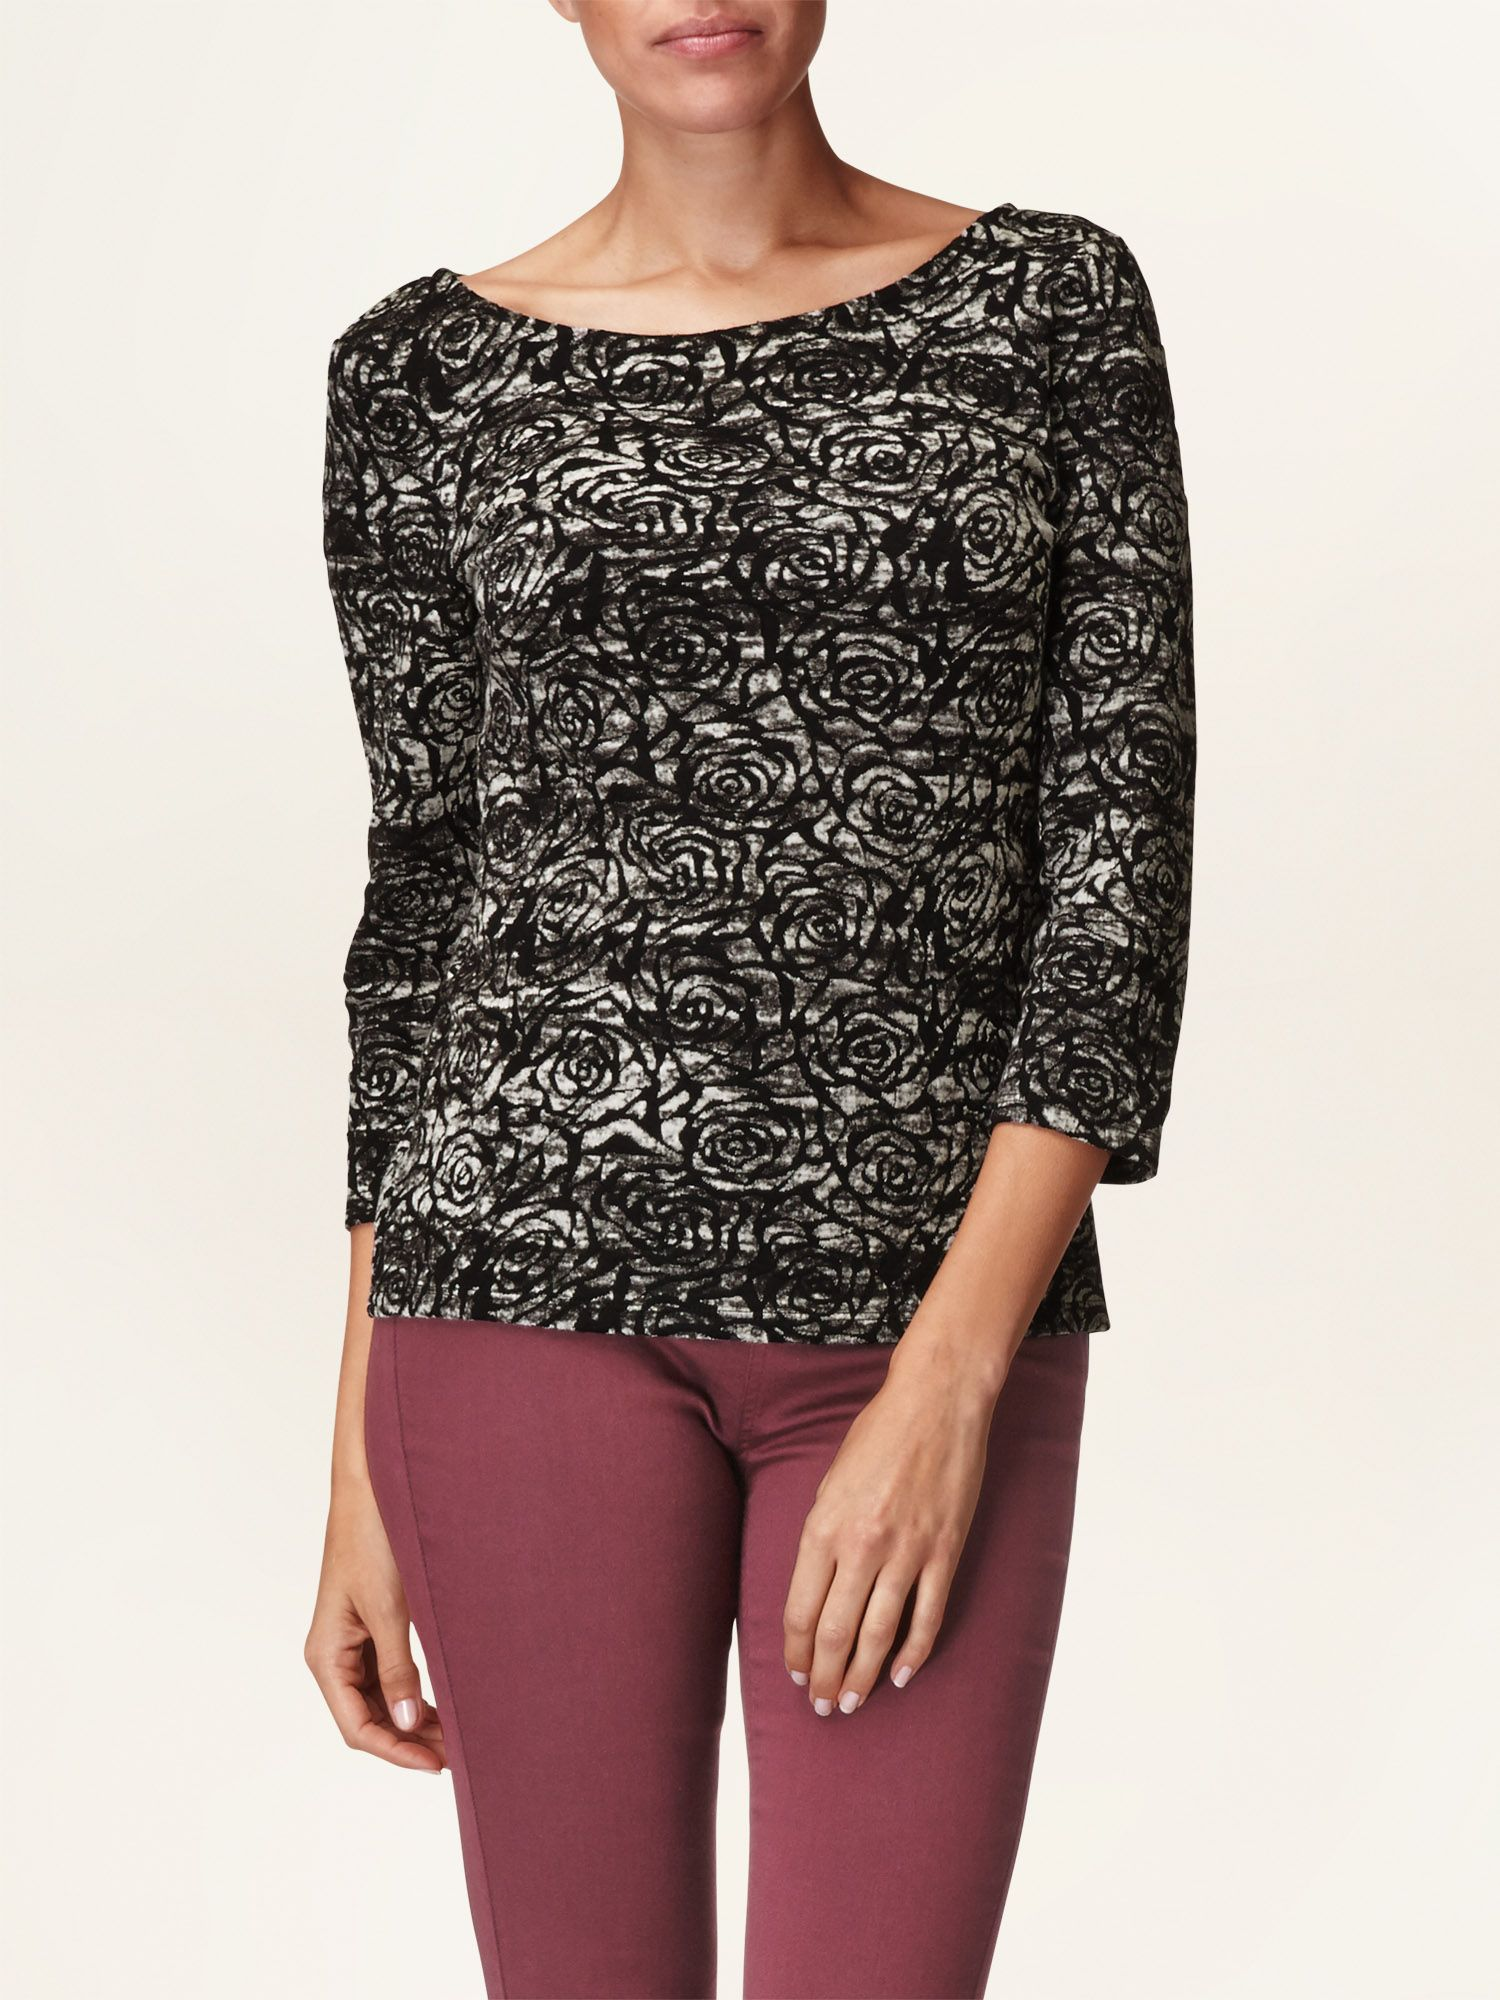 Rose jacquard top